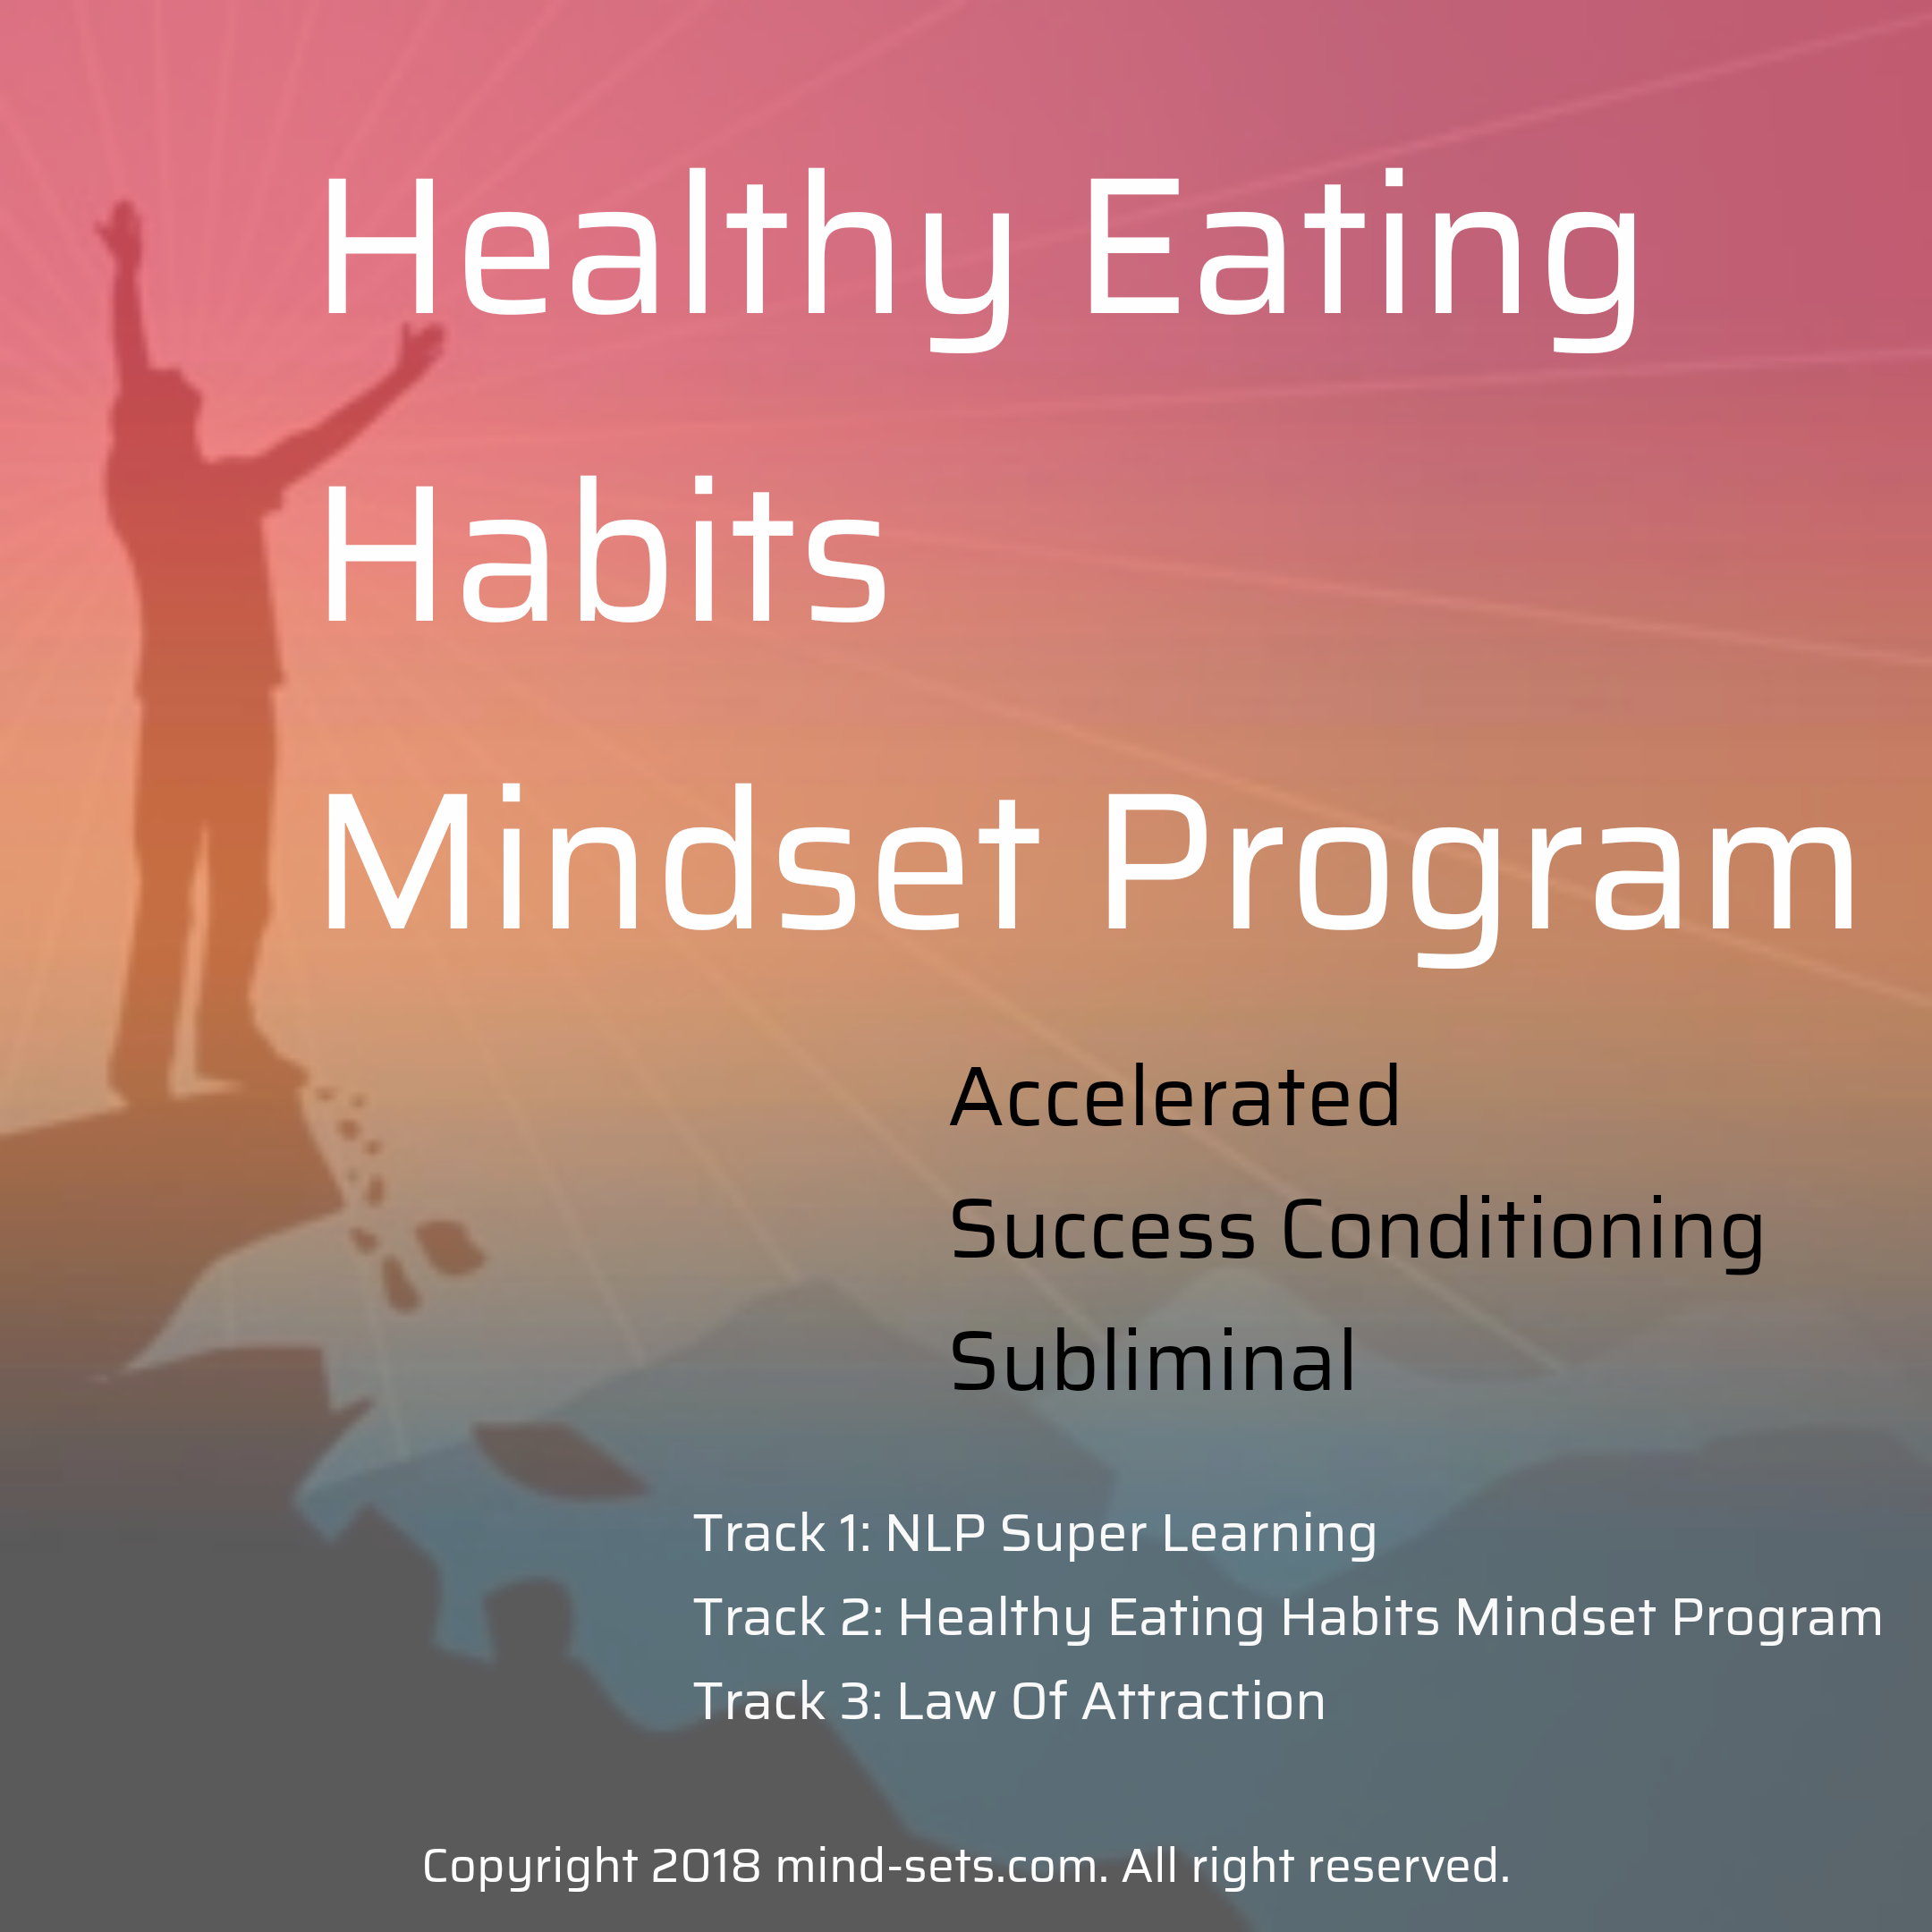 Healthy Eating Habits Mindset Program